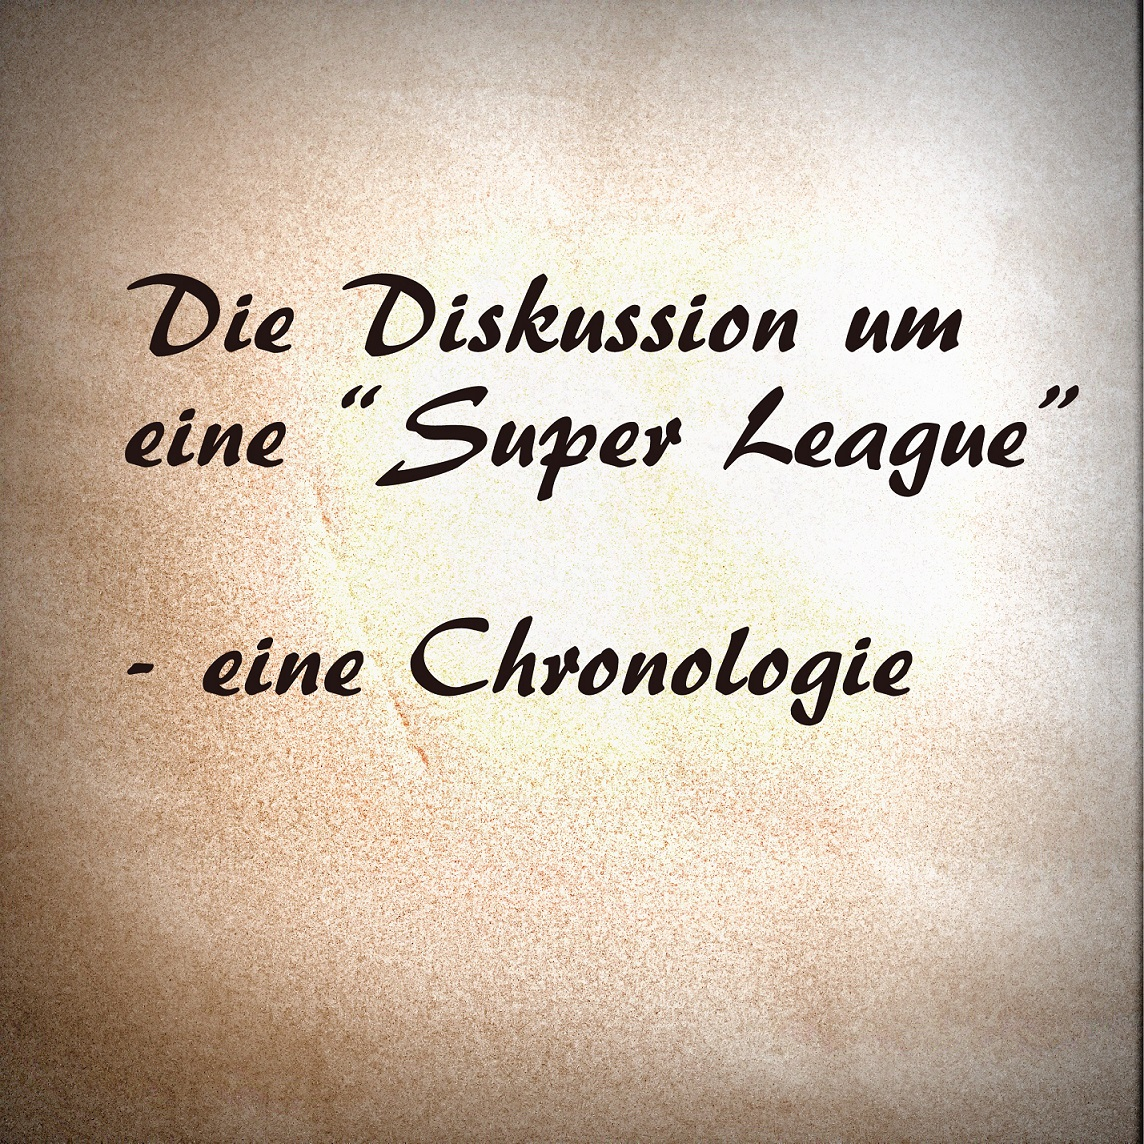 Chronologie Super League_kleiner